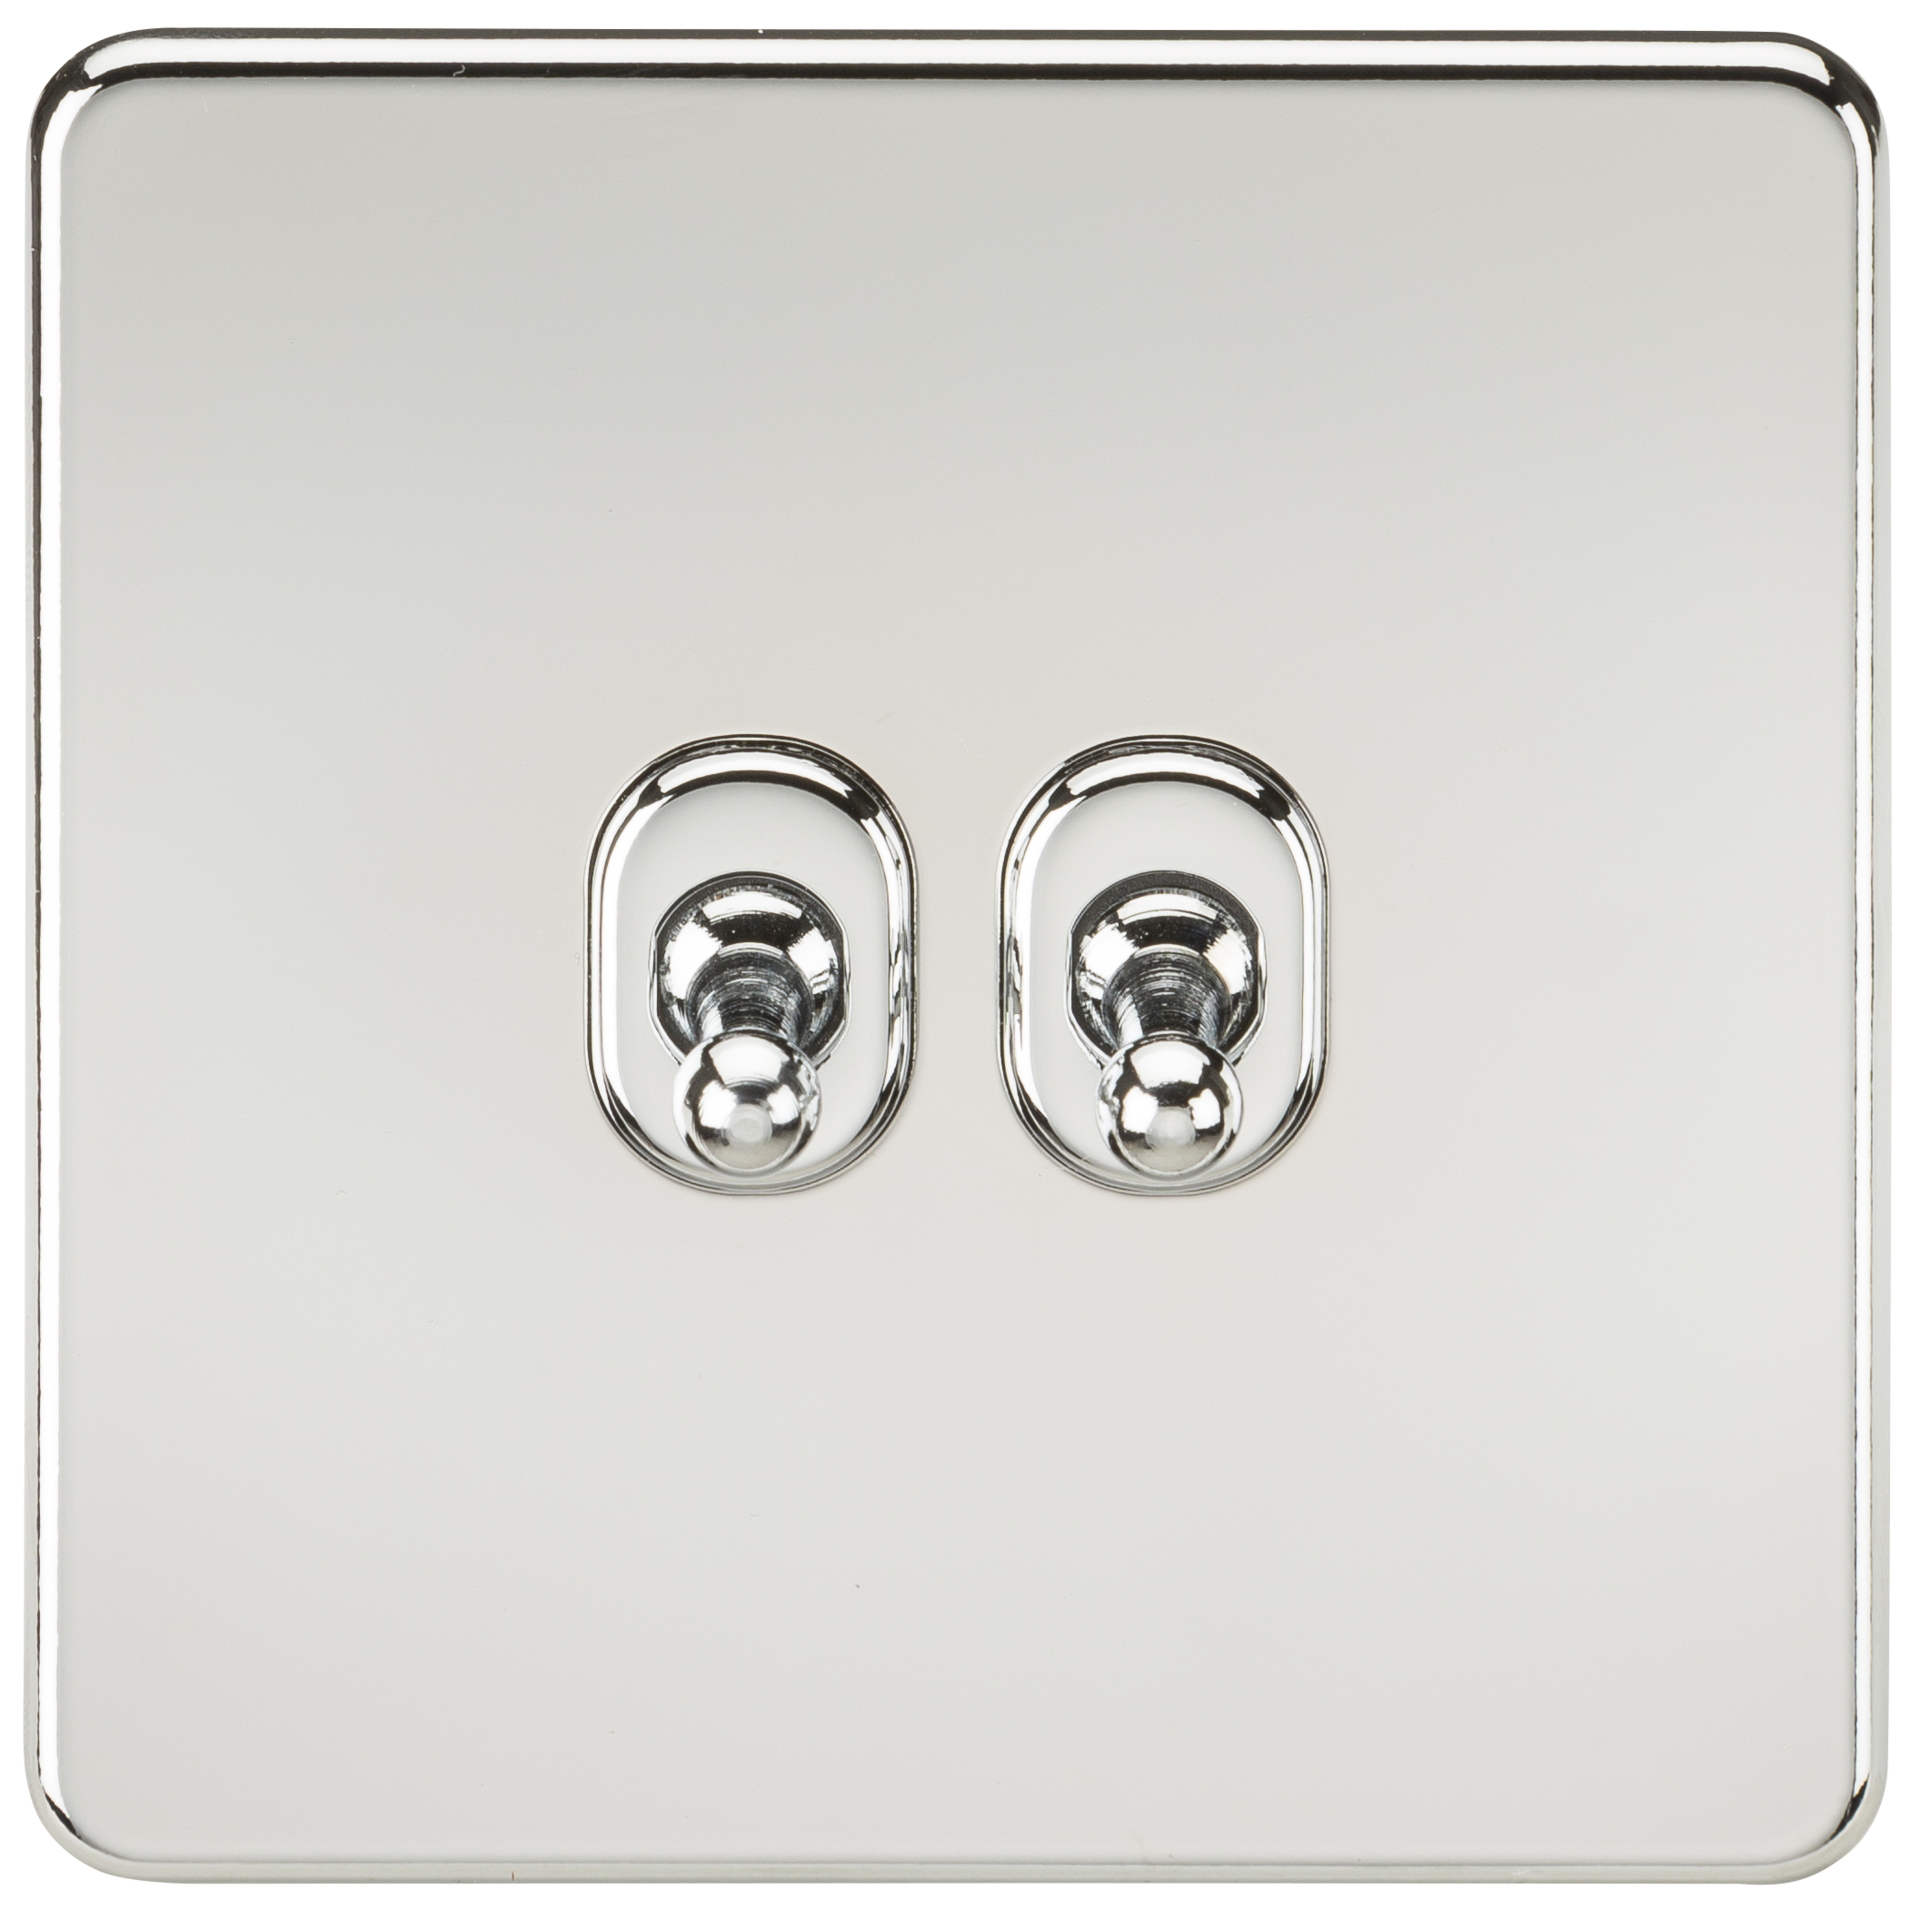 SCREWLESS 10A 2G 2 WAY TOGGLE SWITCH - POLISHED CHROME